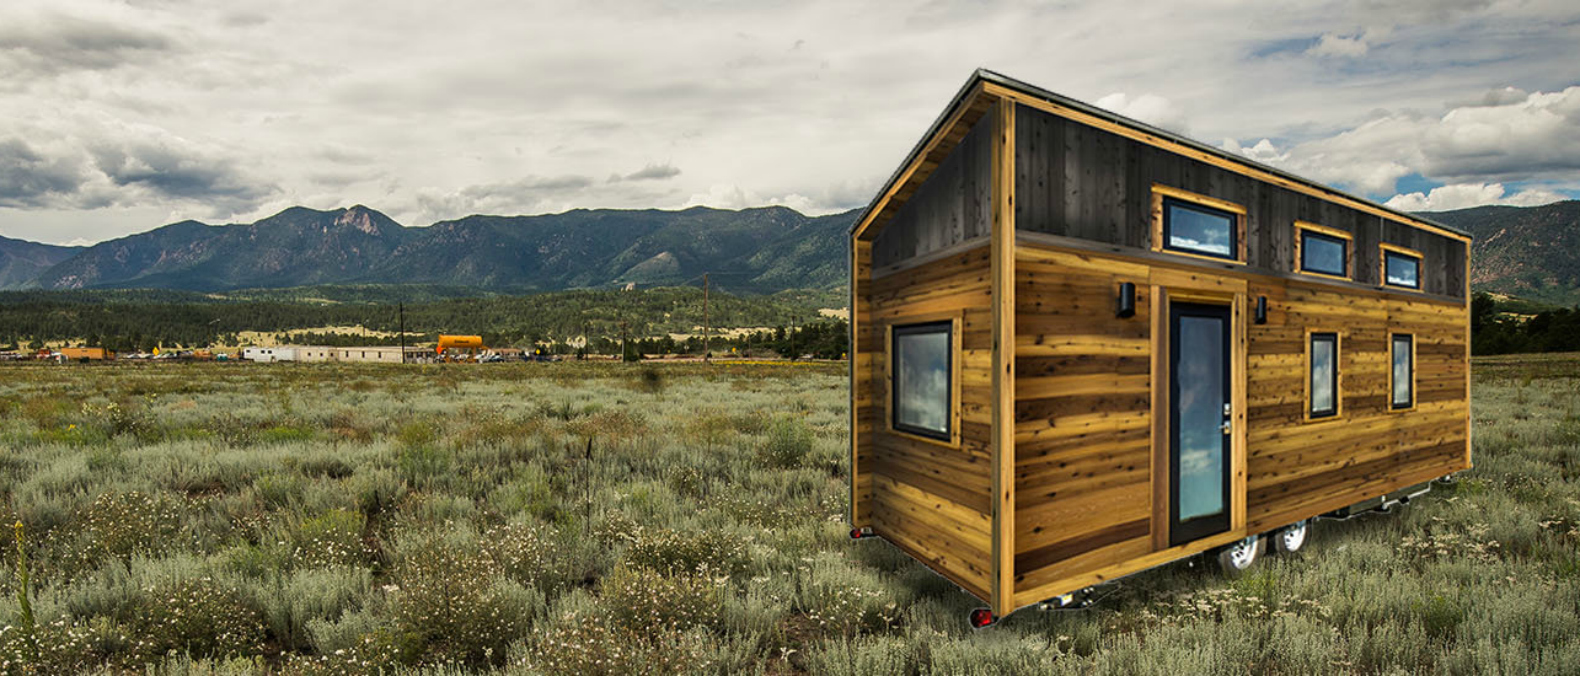 $63k Tiny Home Manages To Feel Open And Airy In Just 188 Square Feet Part 78